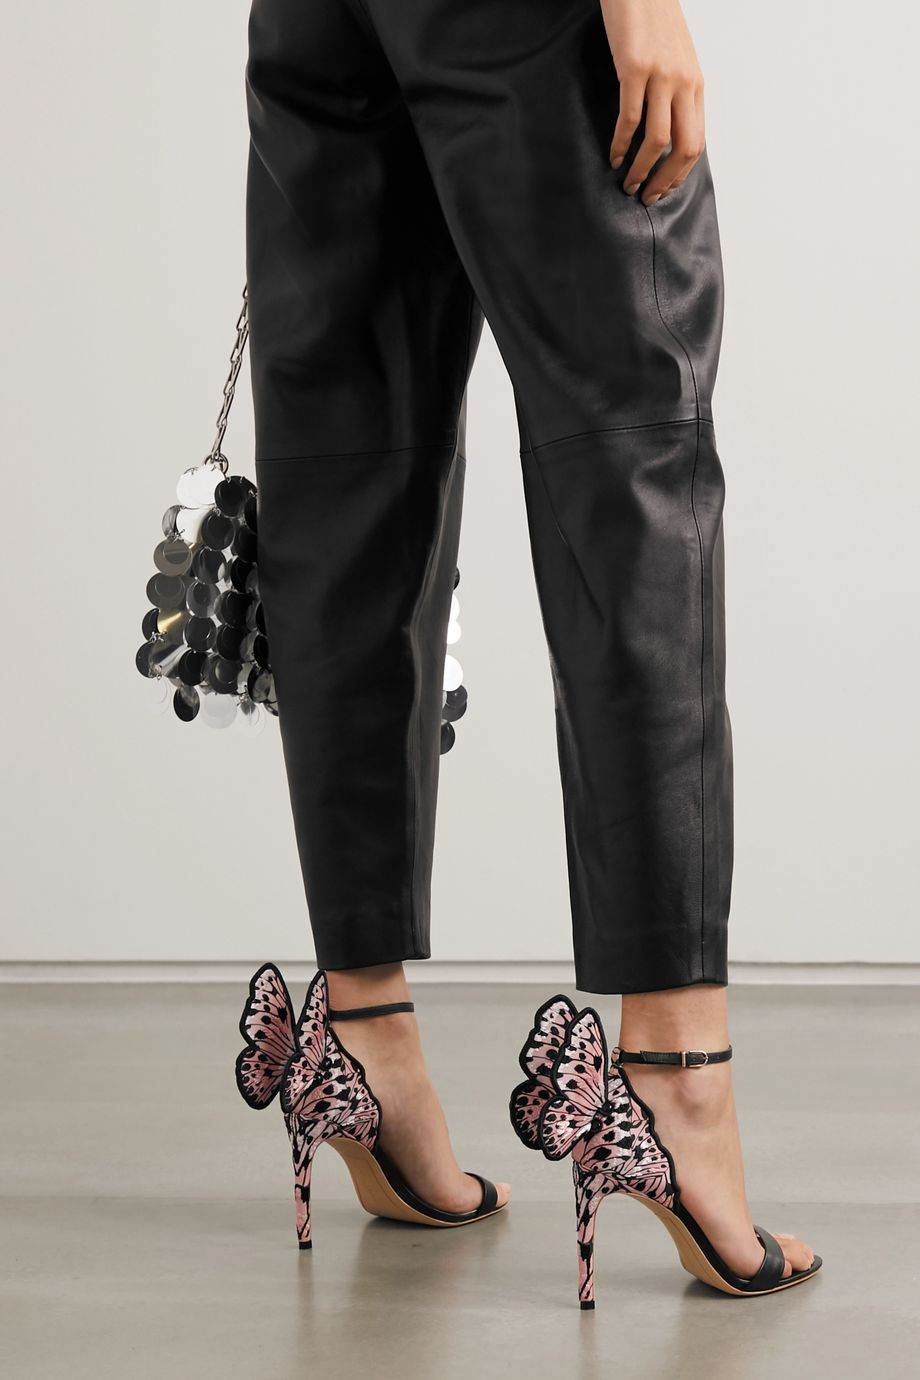 Sophia Webster Chiara embroidered satin and leather sandals